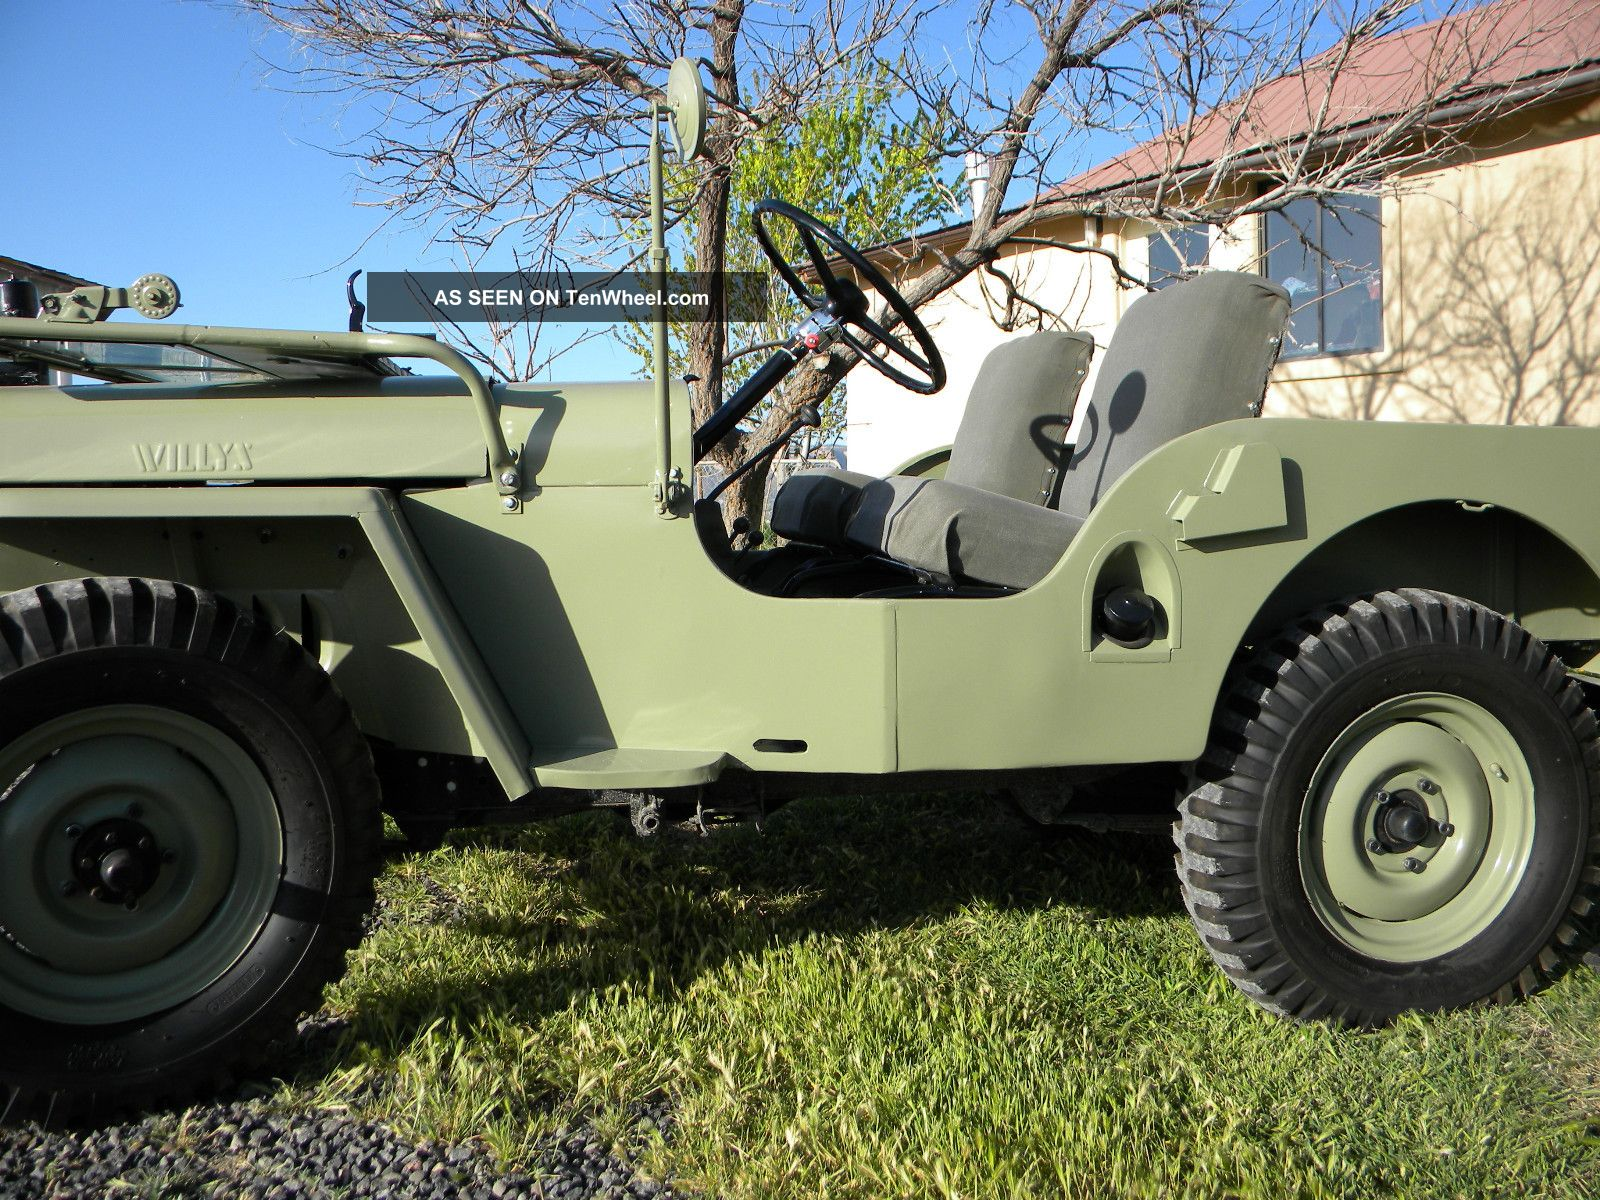 1948 Willys Jeep Cj 2a Full Frame Off